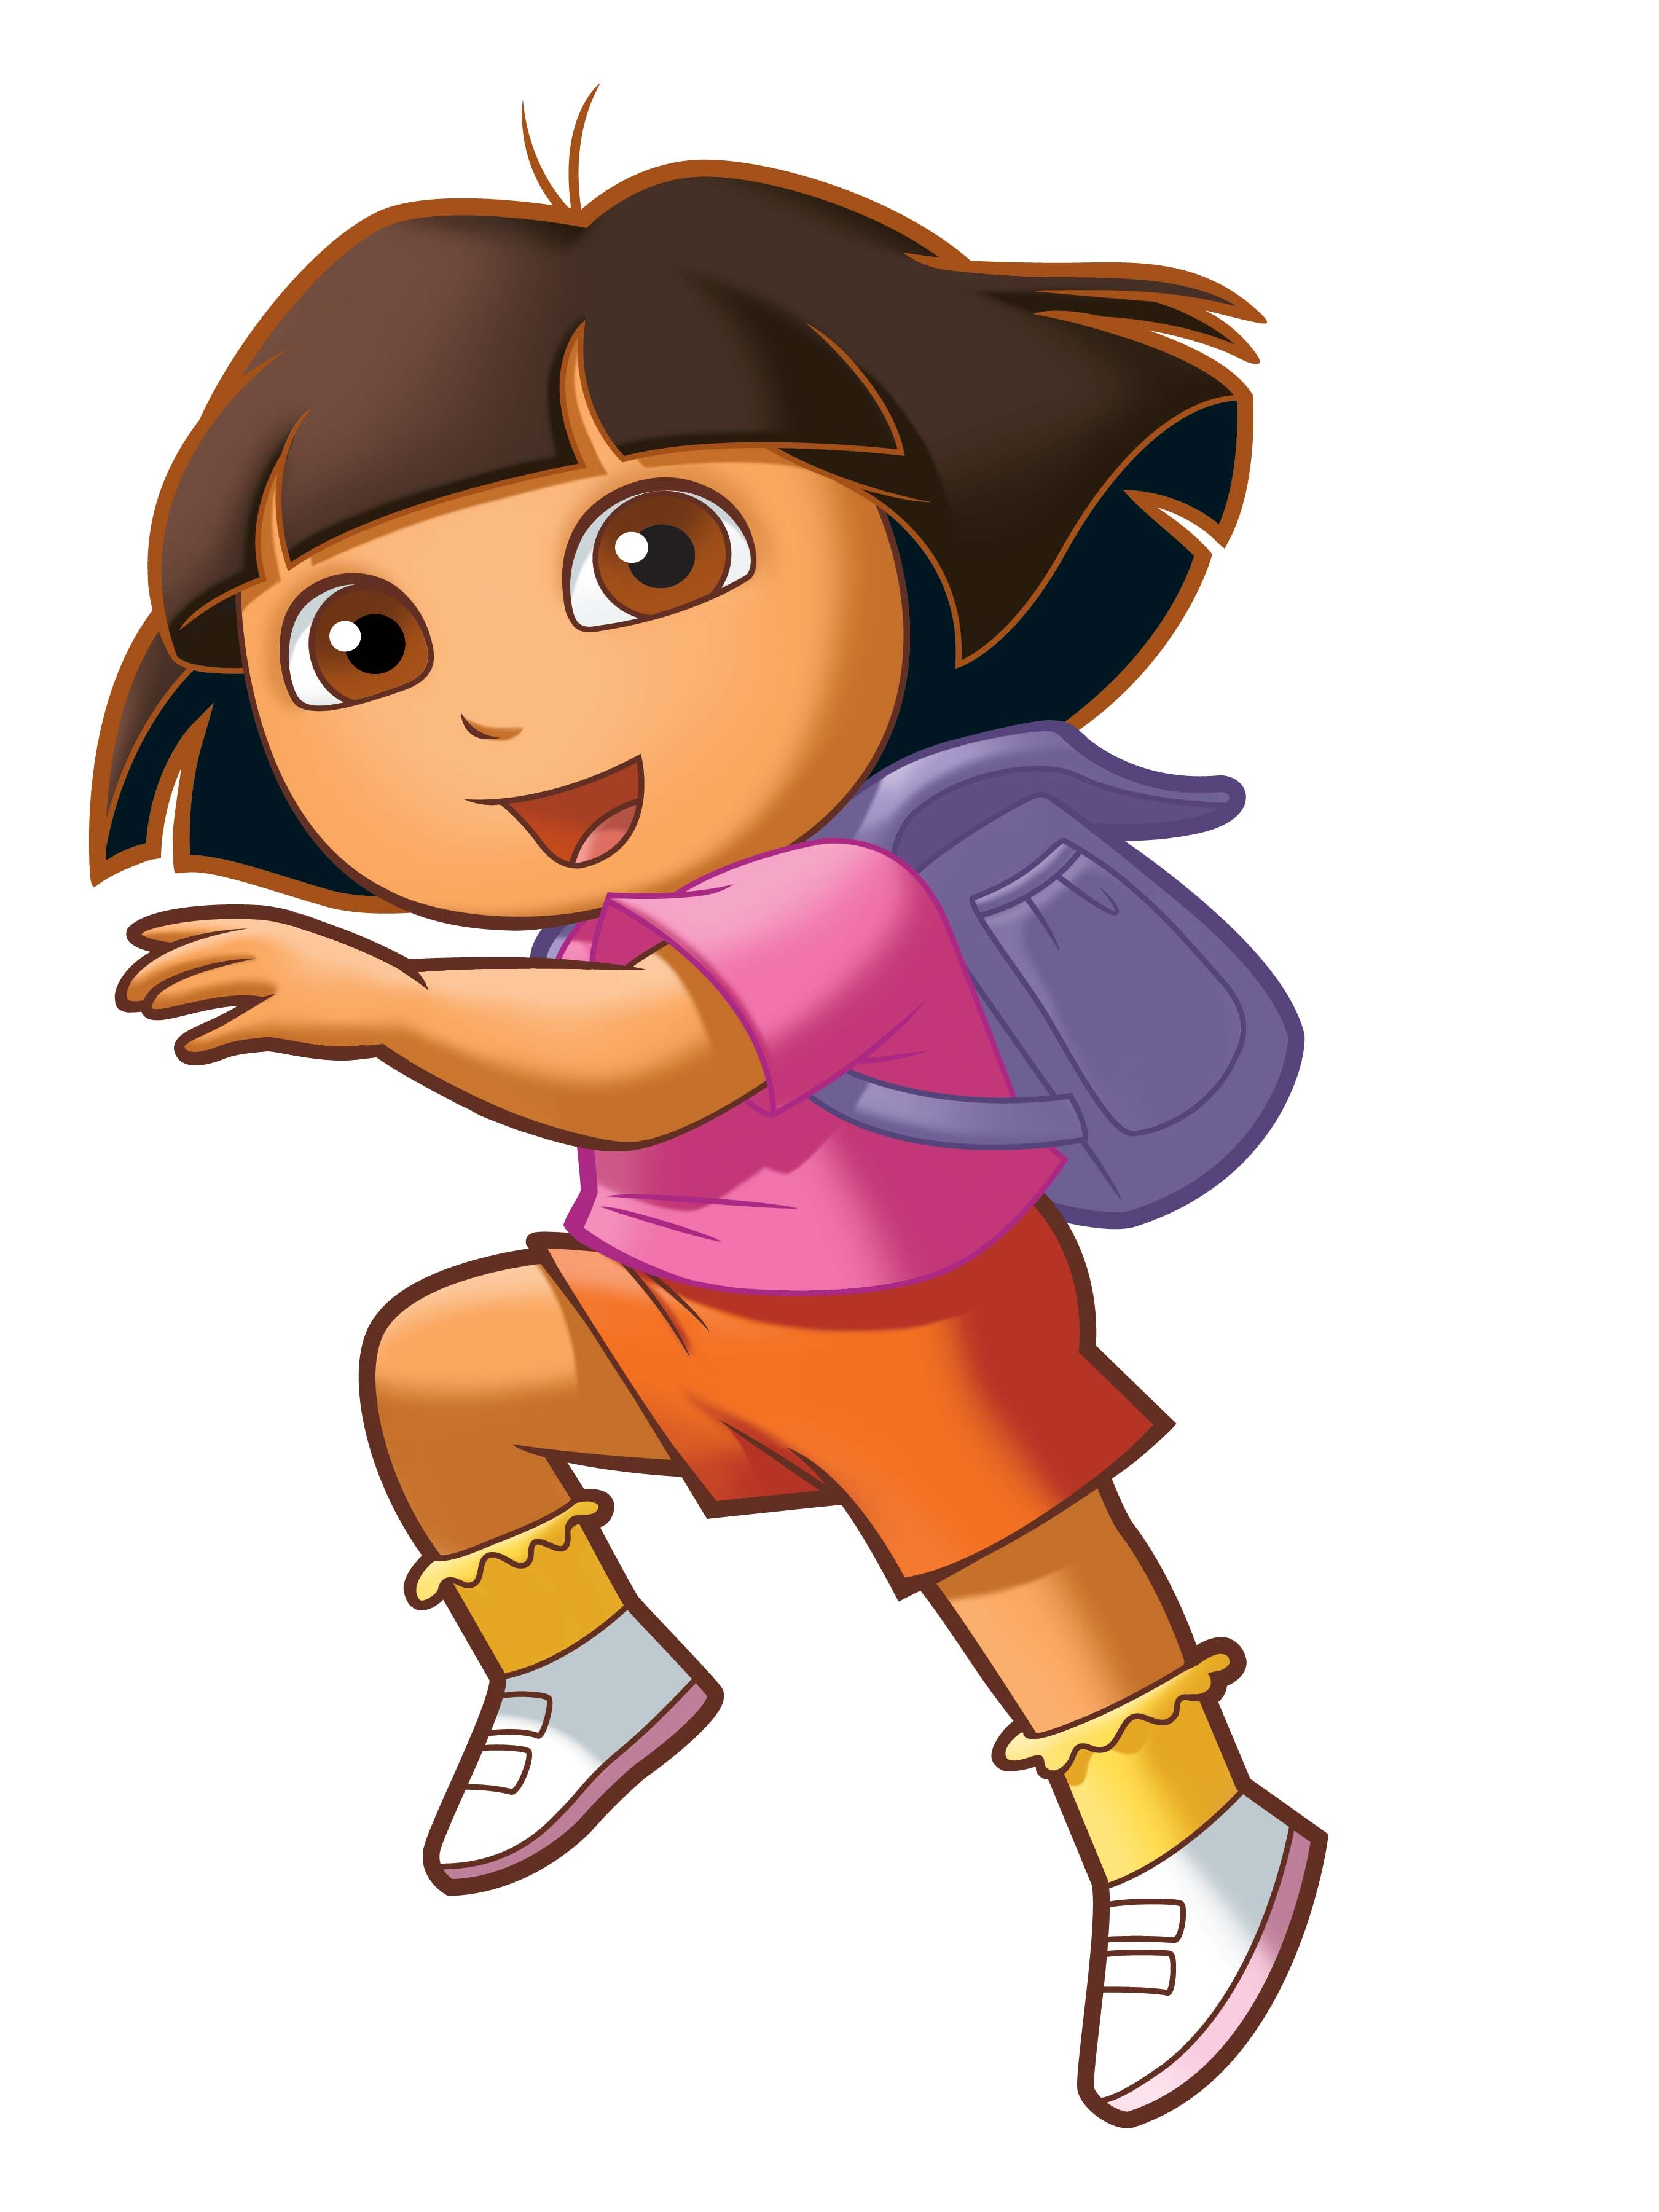 Dora the Explorer Wallpapers High Quality | Download Free